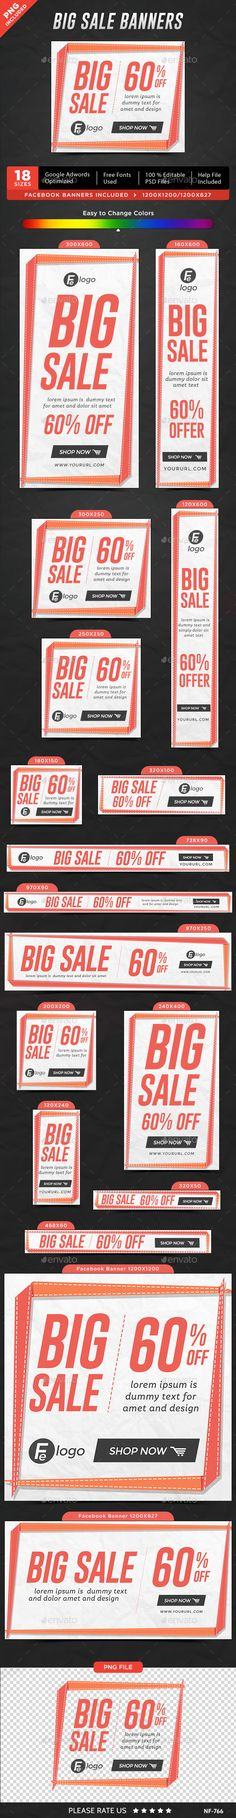 104 Best Sale banners images Sale banner, Banner template, Web banners